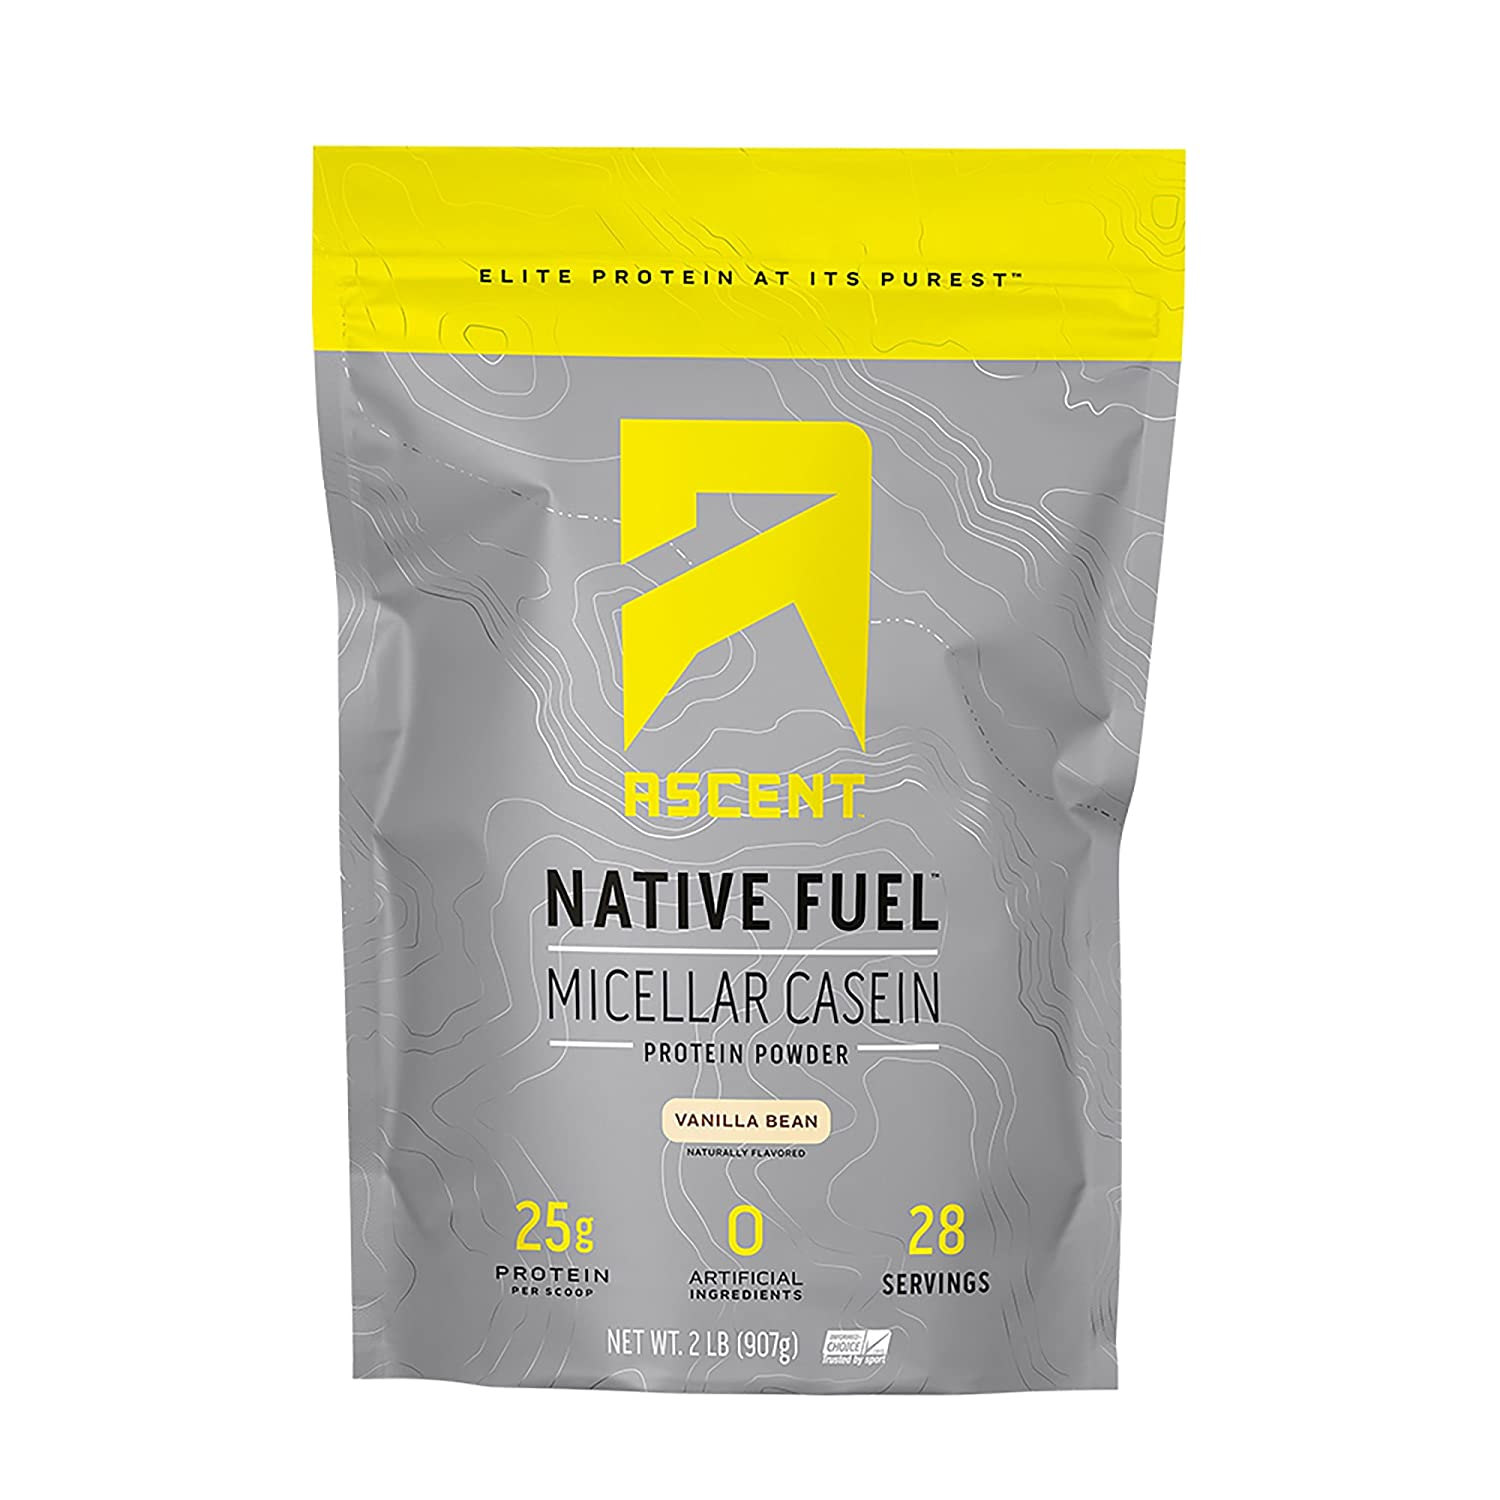 Ascent Native Fuel Micellar Casein Protein Powder